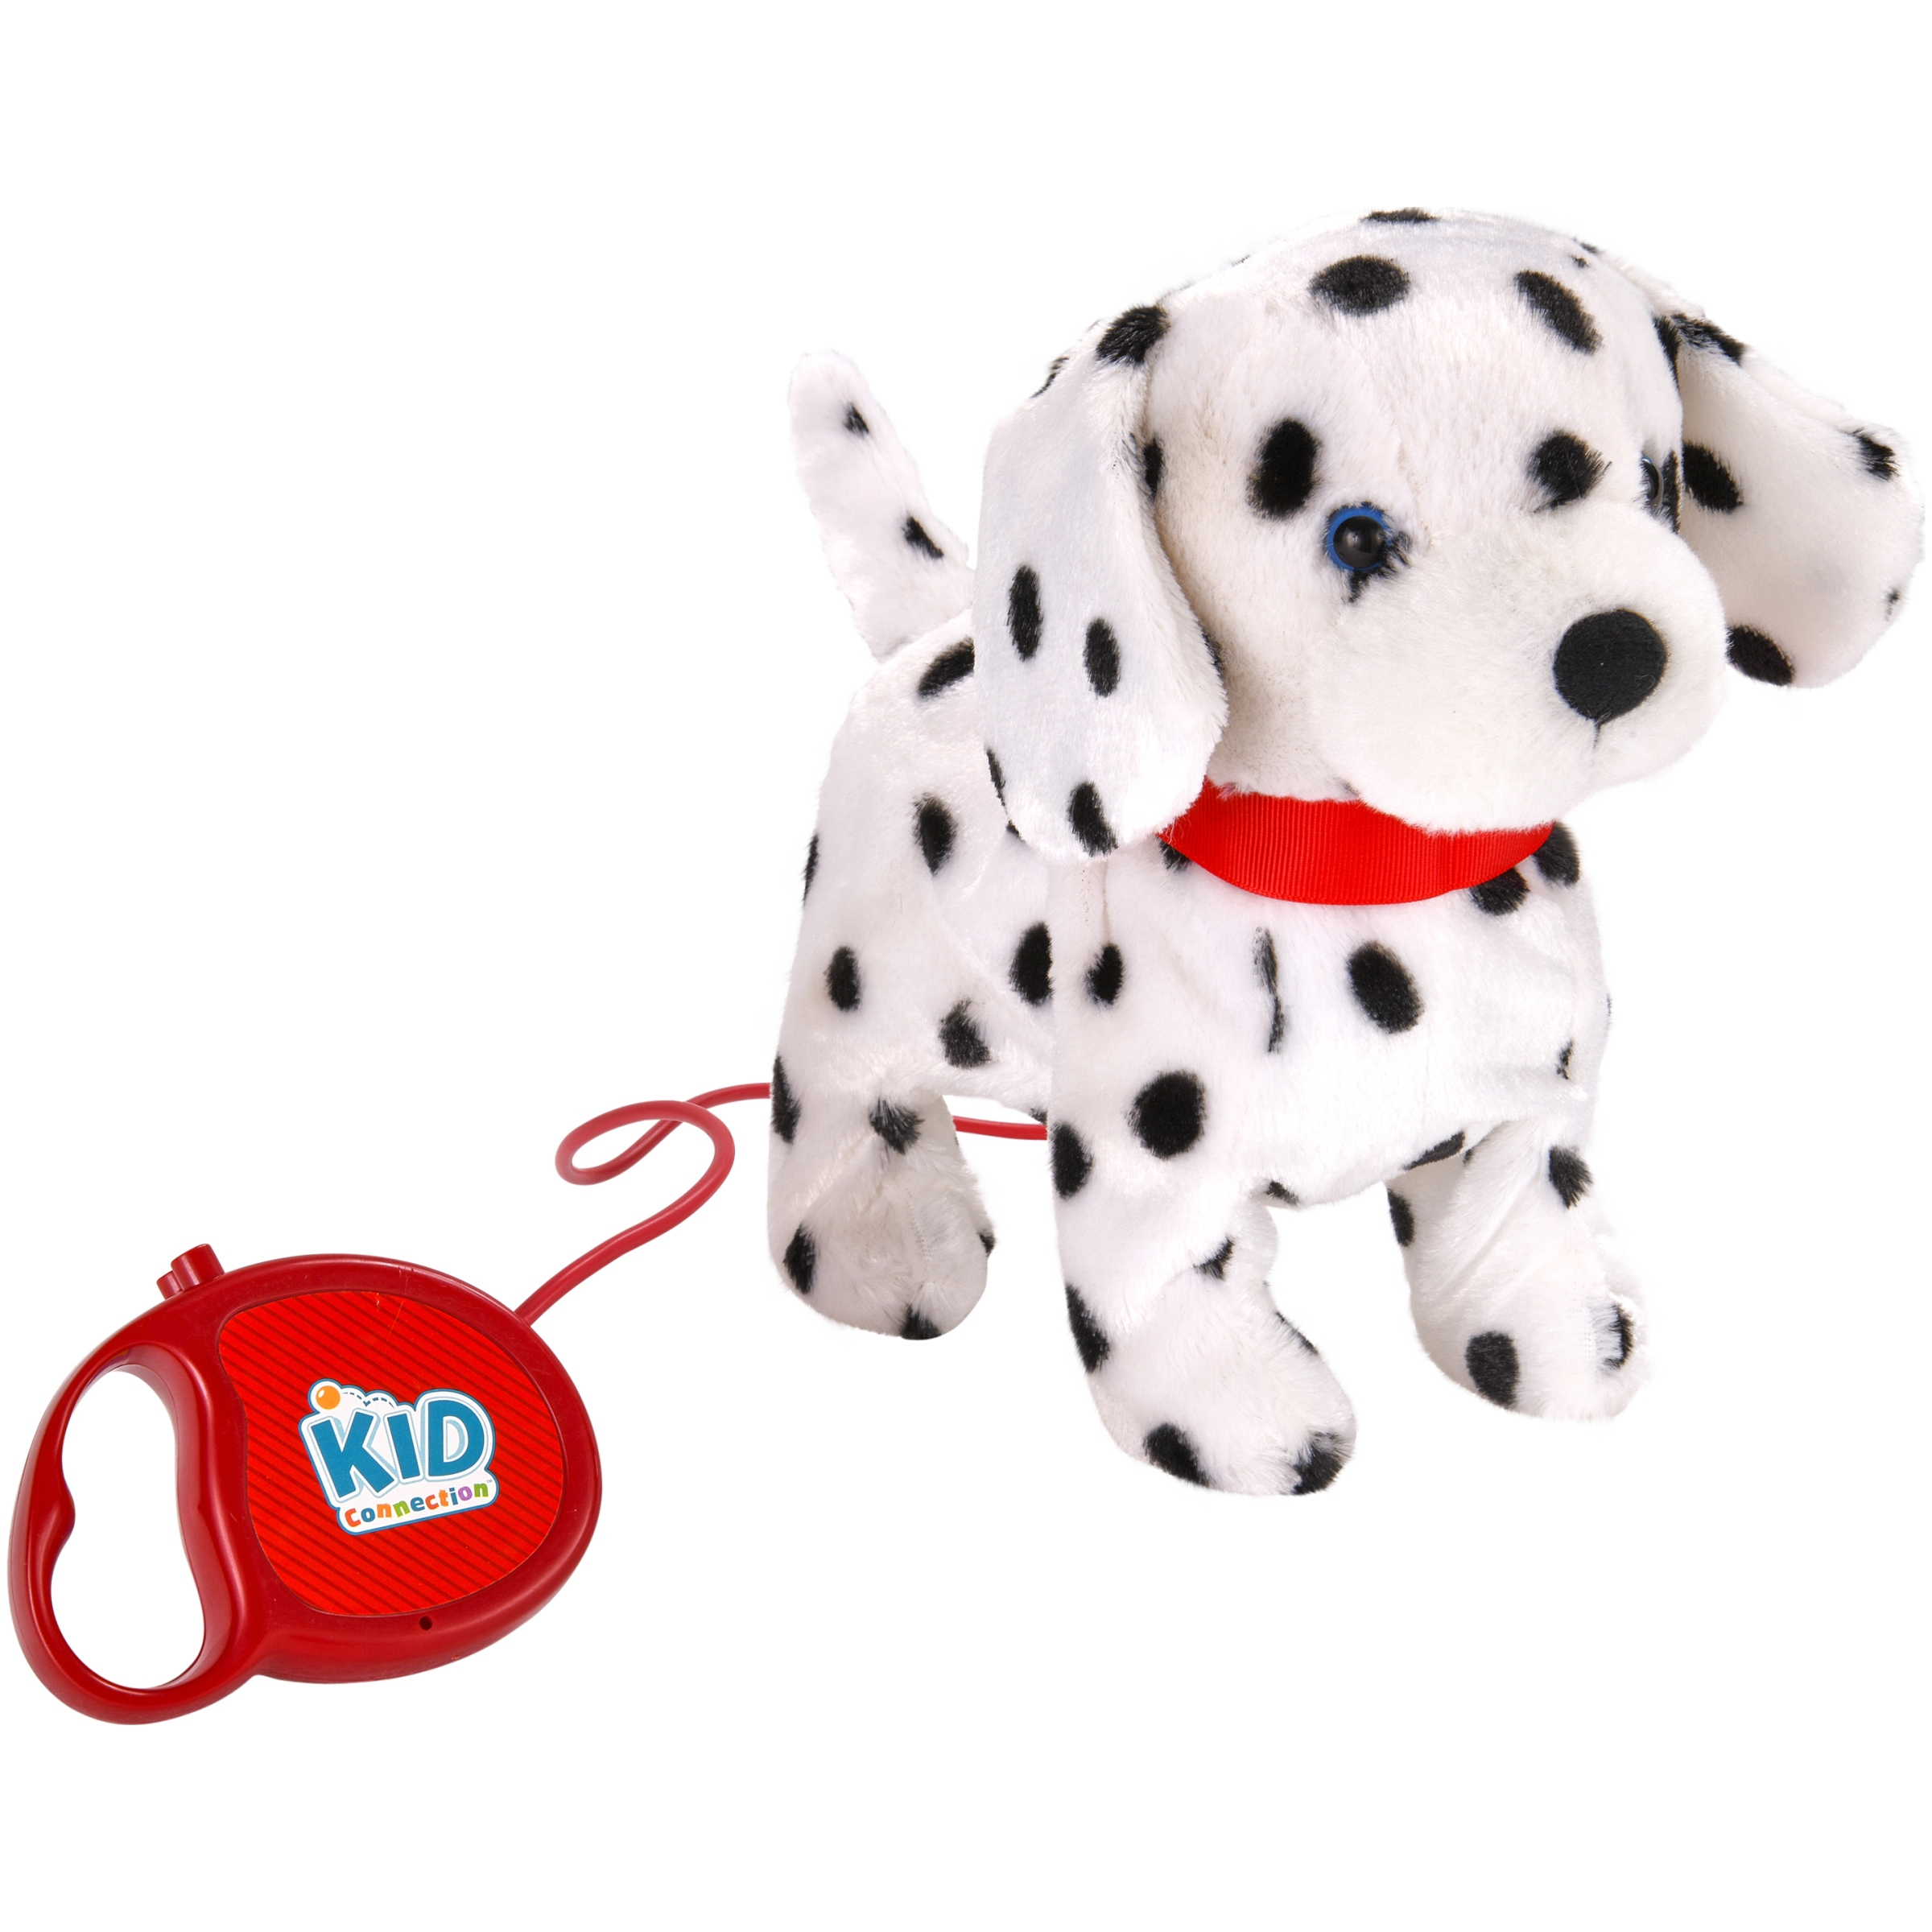 "Kid Connection 9"" Plush Dalmatian Walking Pet, Black & White with Red Collar"